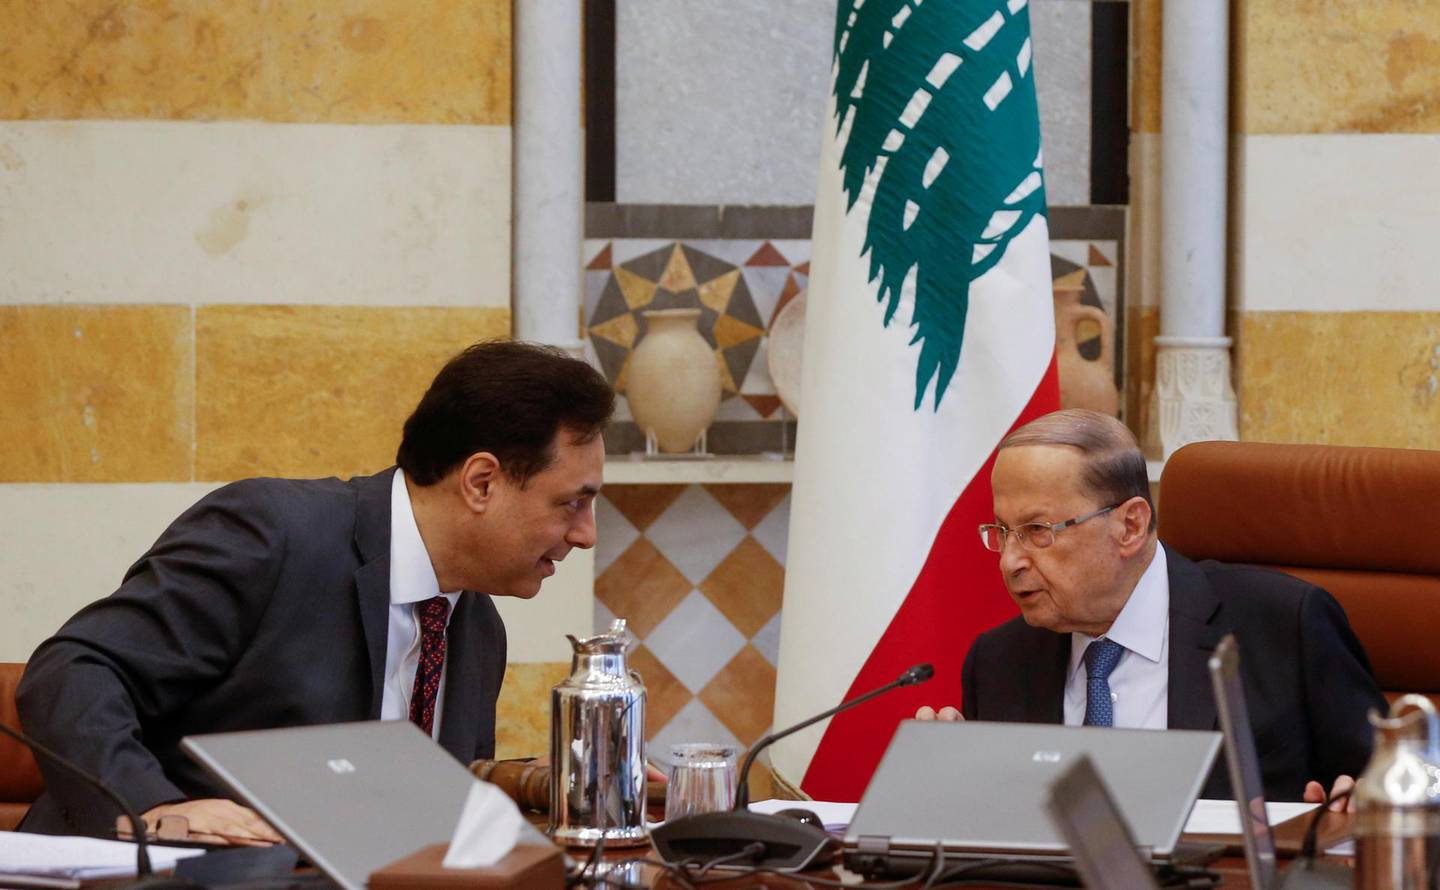 FILE PHOTO: Lebanon's Prime Minister Hassan Diab speaks with Lebanon's President Michel Aoun during a cabinet meeting at the presidential palace in Baabda, Lebanon February 6, 2020. REUTERS/Mohamed Azakir/File Photo